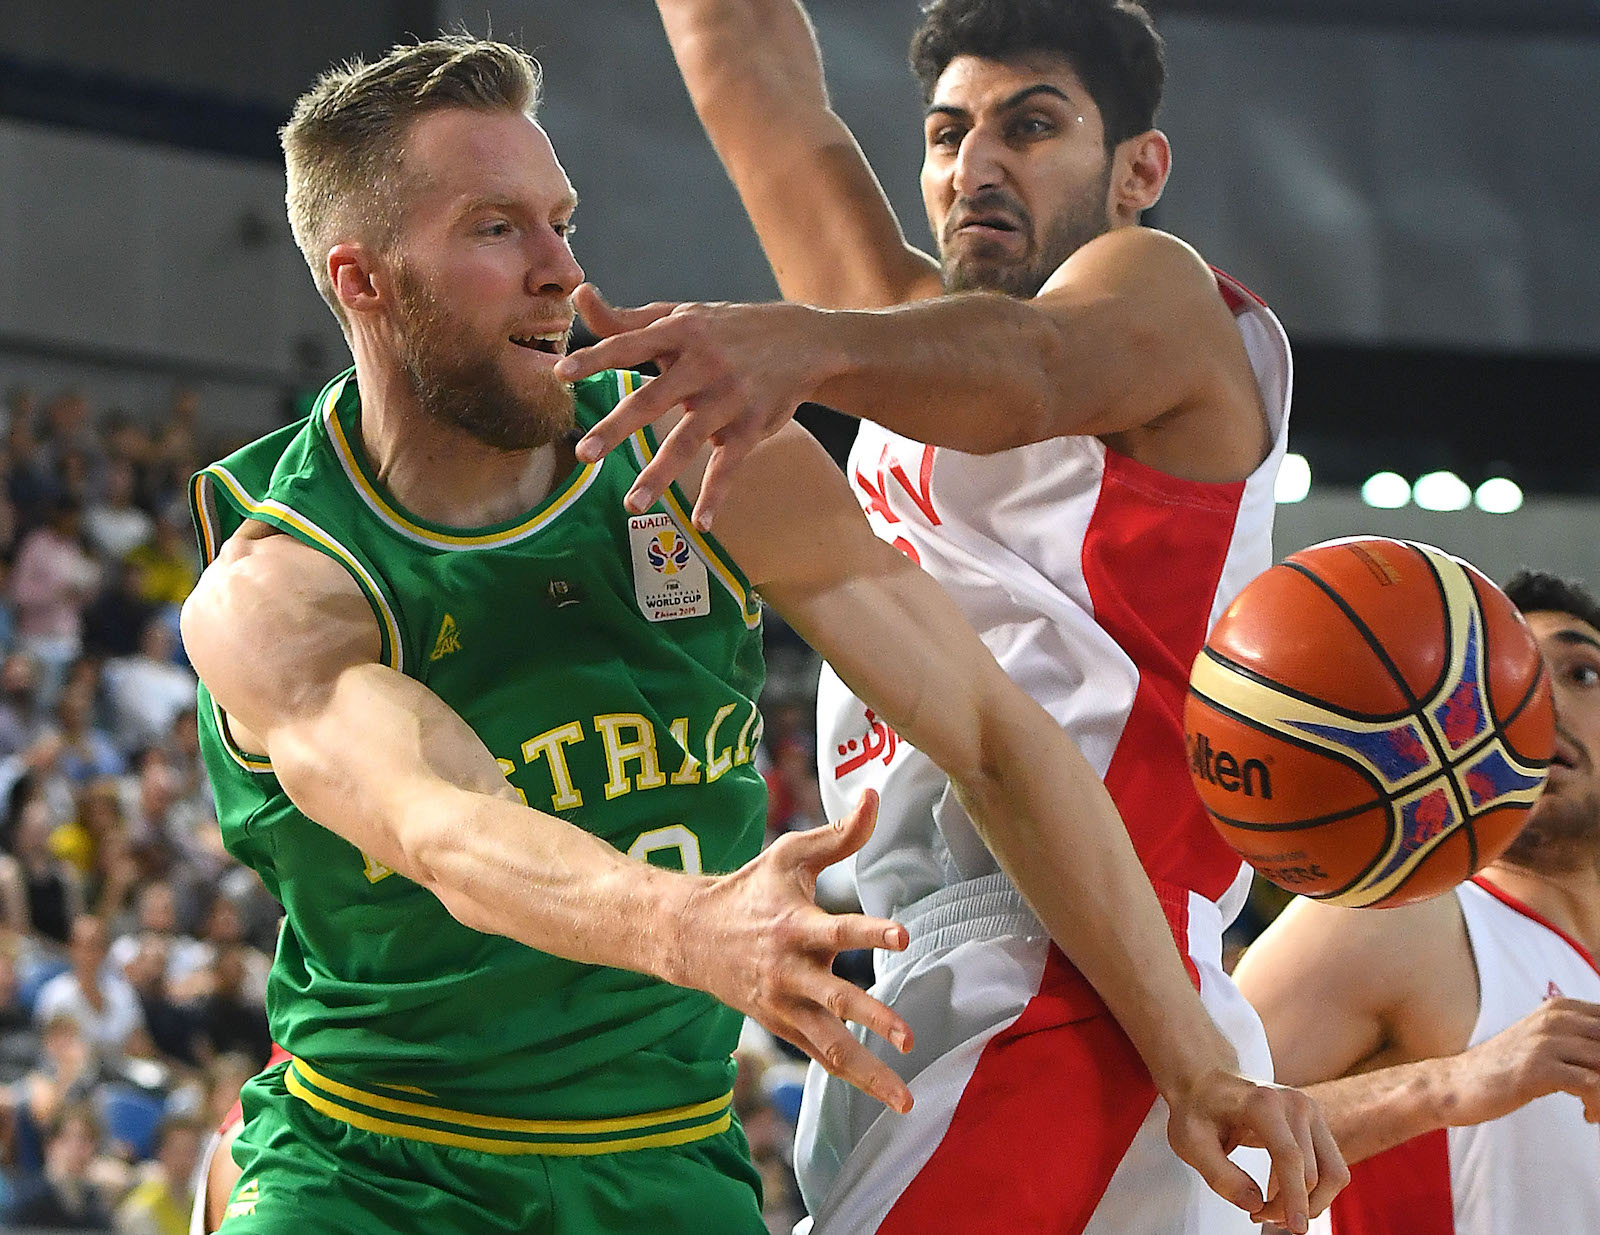 Australia plays Iran in a FIBA World Cup Qualifying match on 30 November in Melbourne (Photo: Quinn Rooney/Getty)